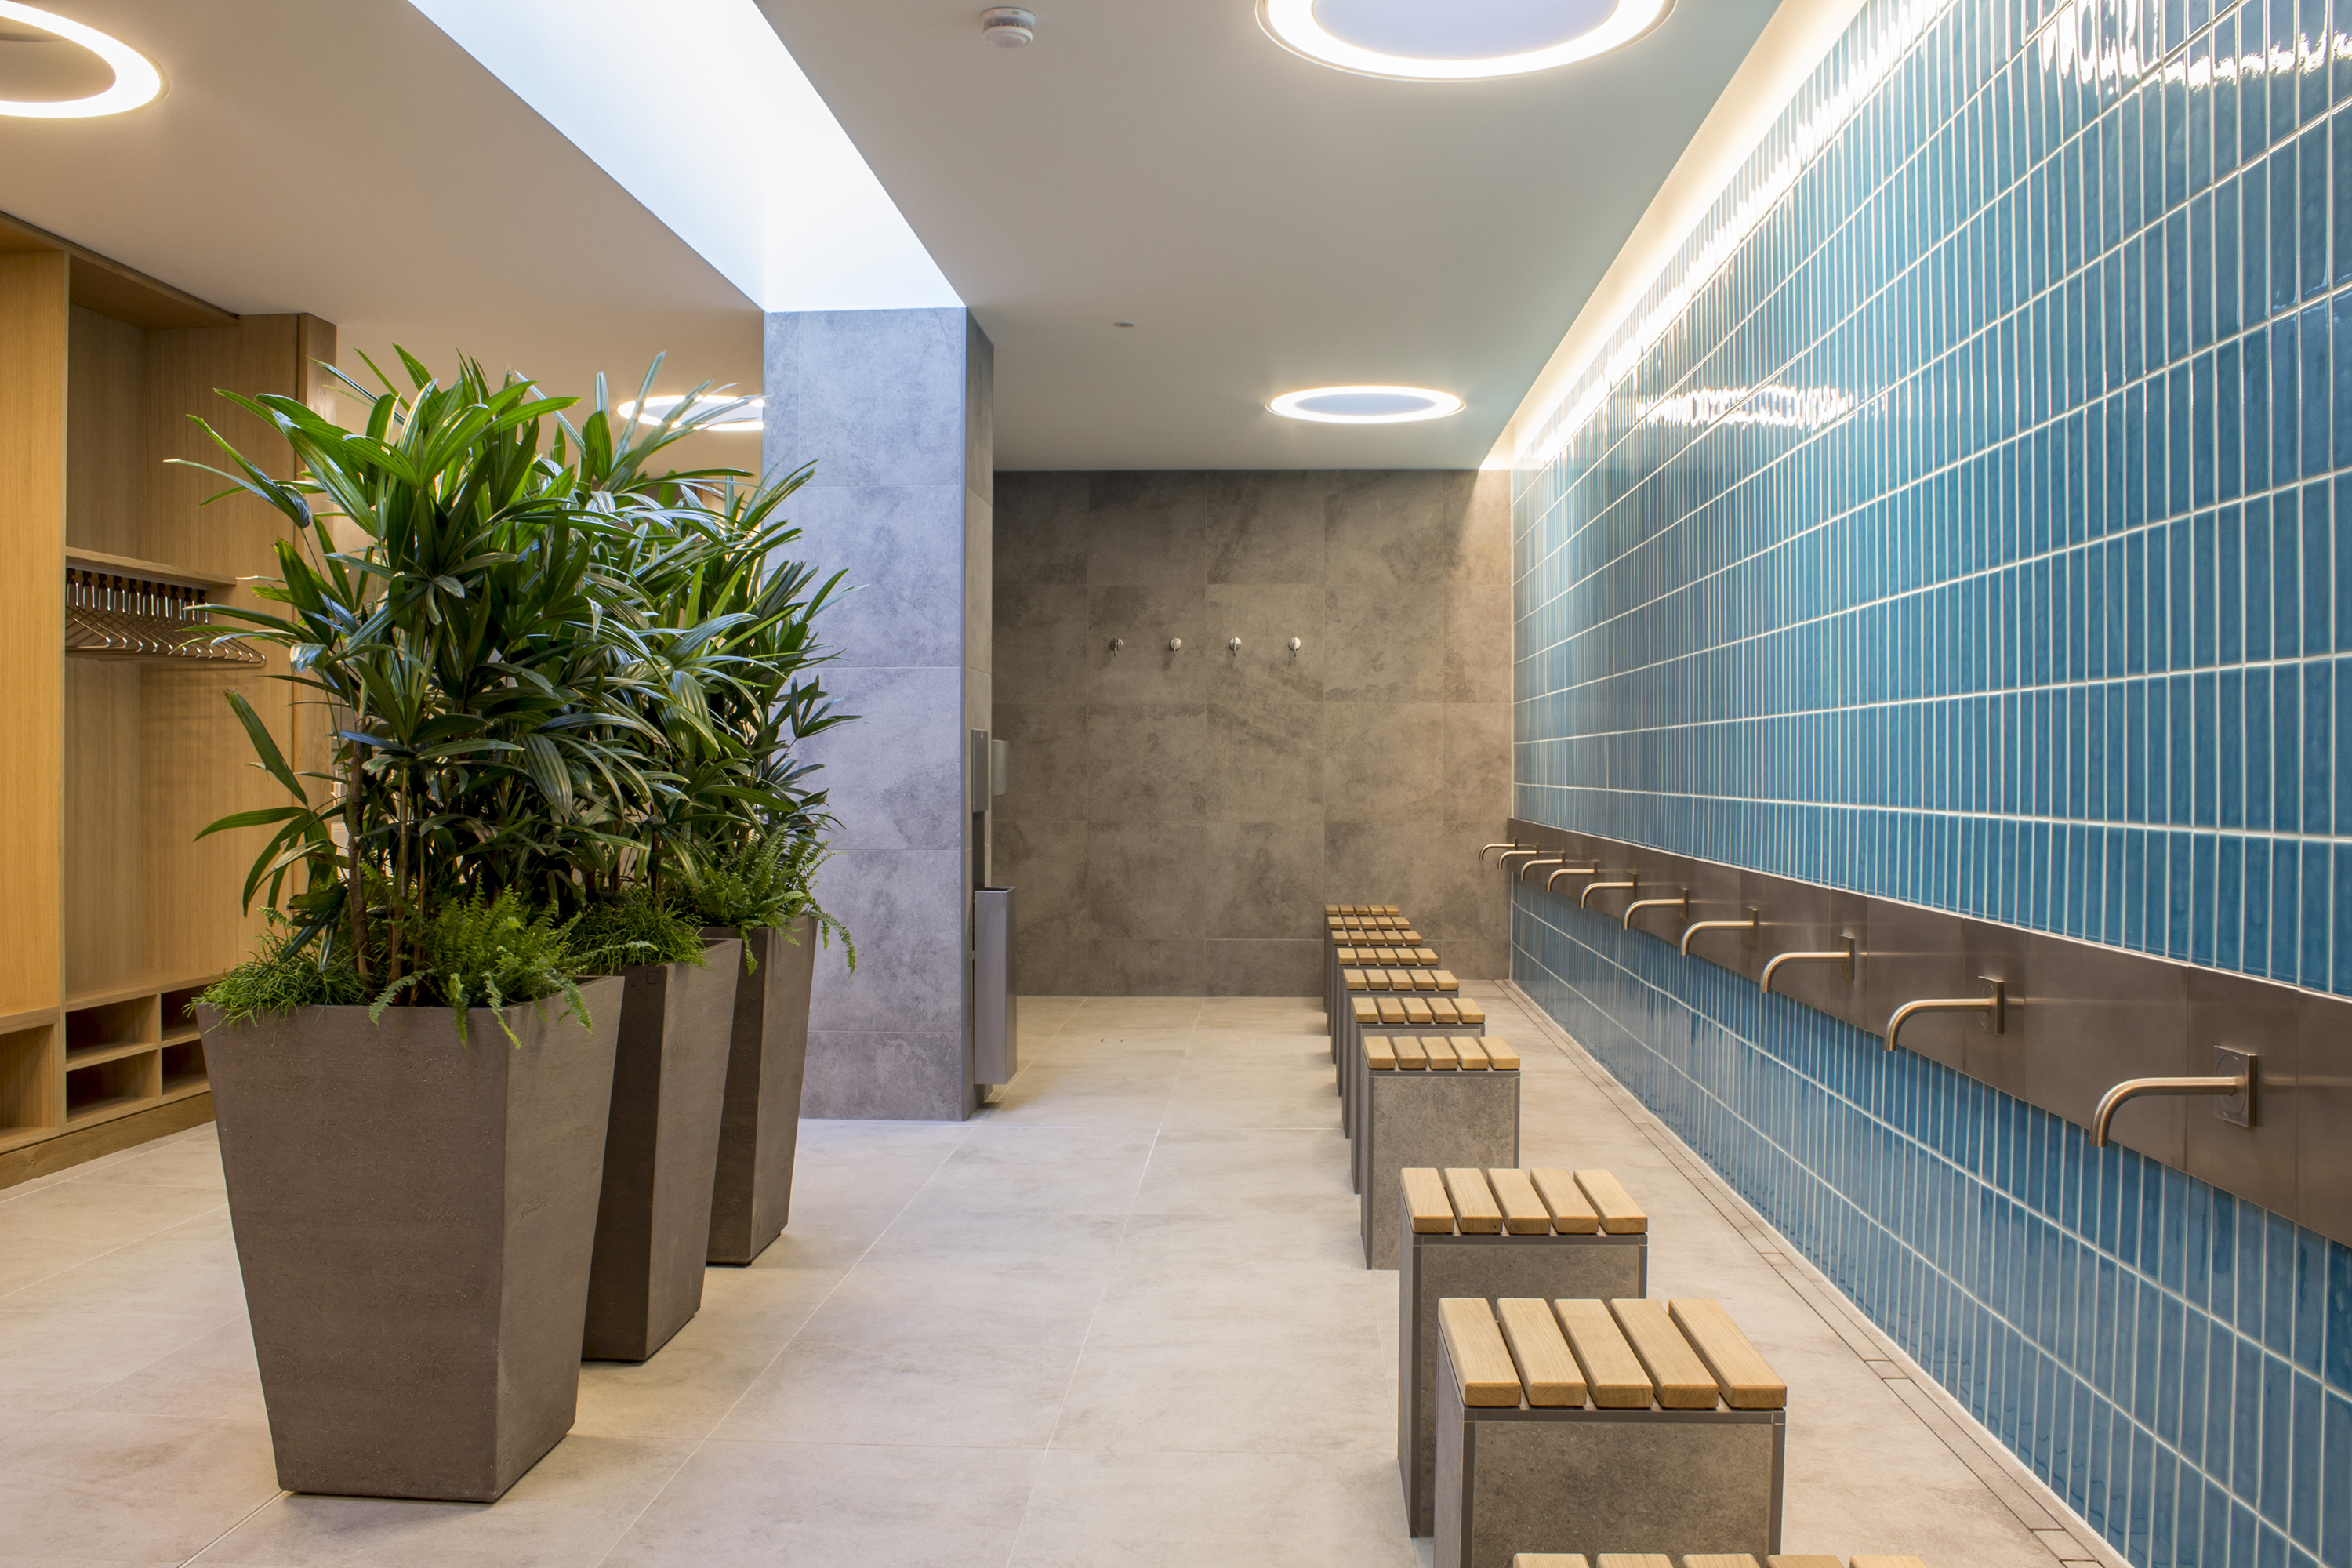 Male Ablutions. The Cambridge Mosque by Marks Barfield Architects